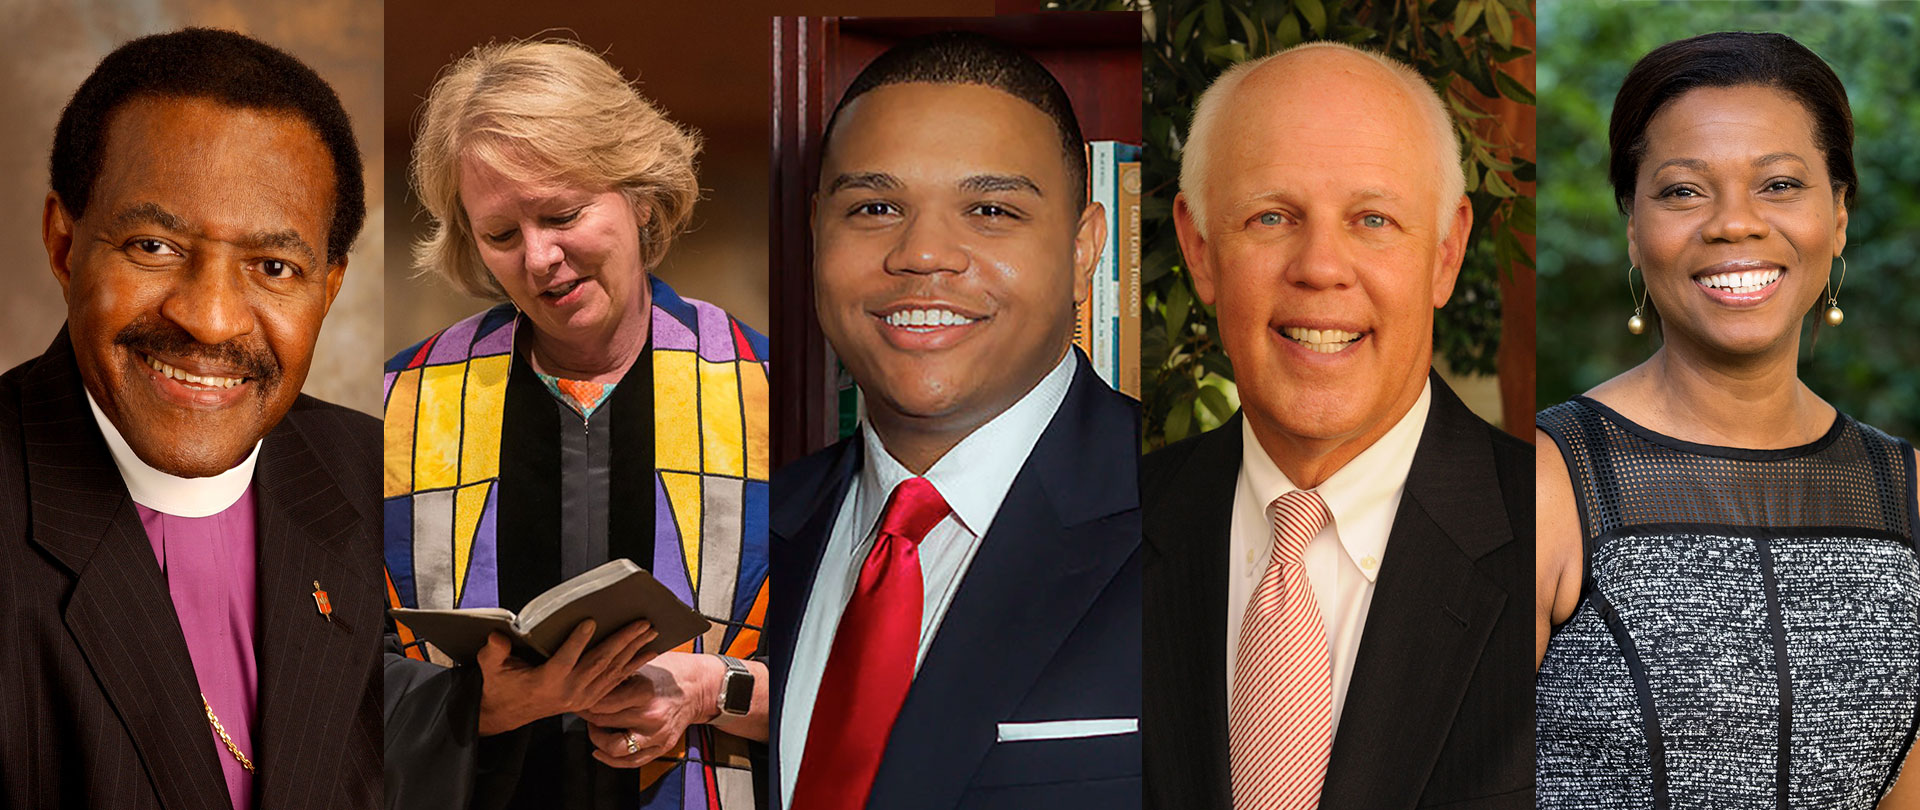 Racial Reconciliation Speakers